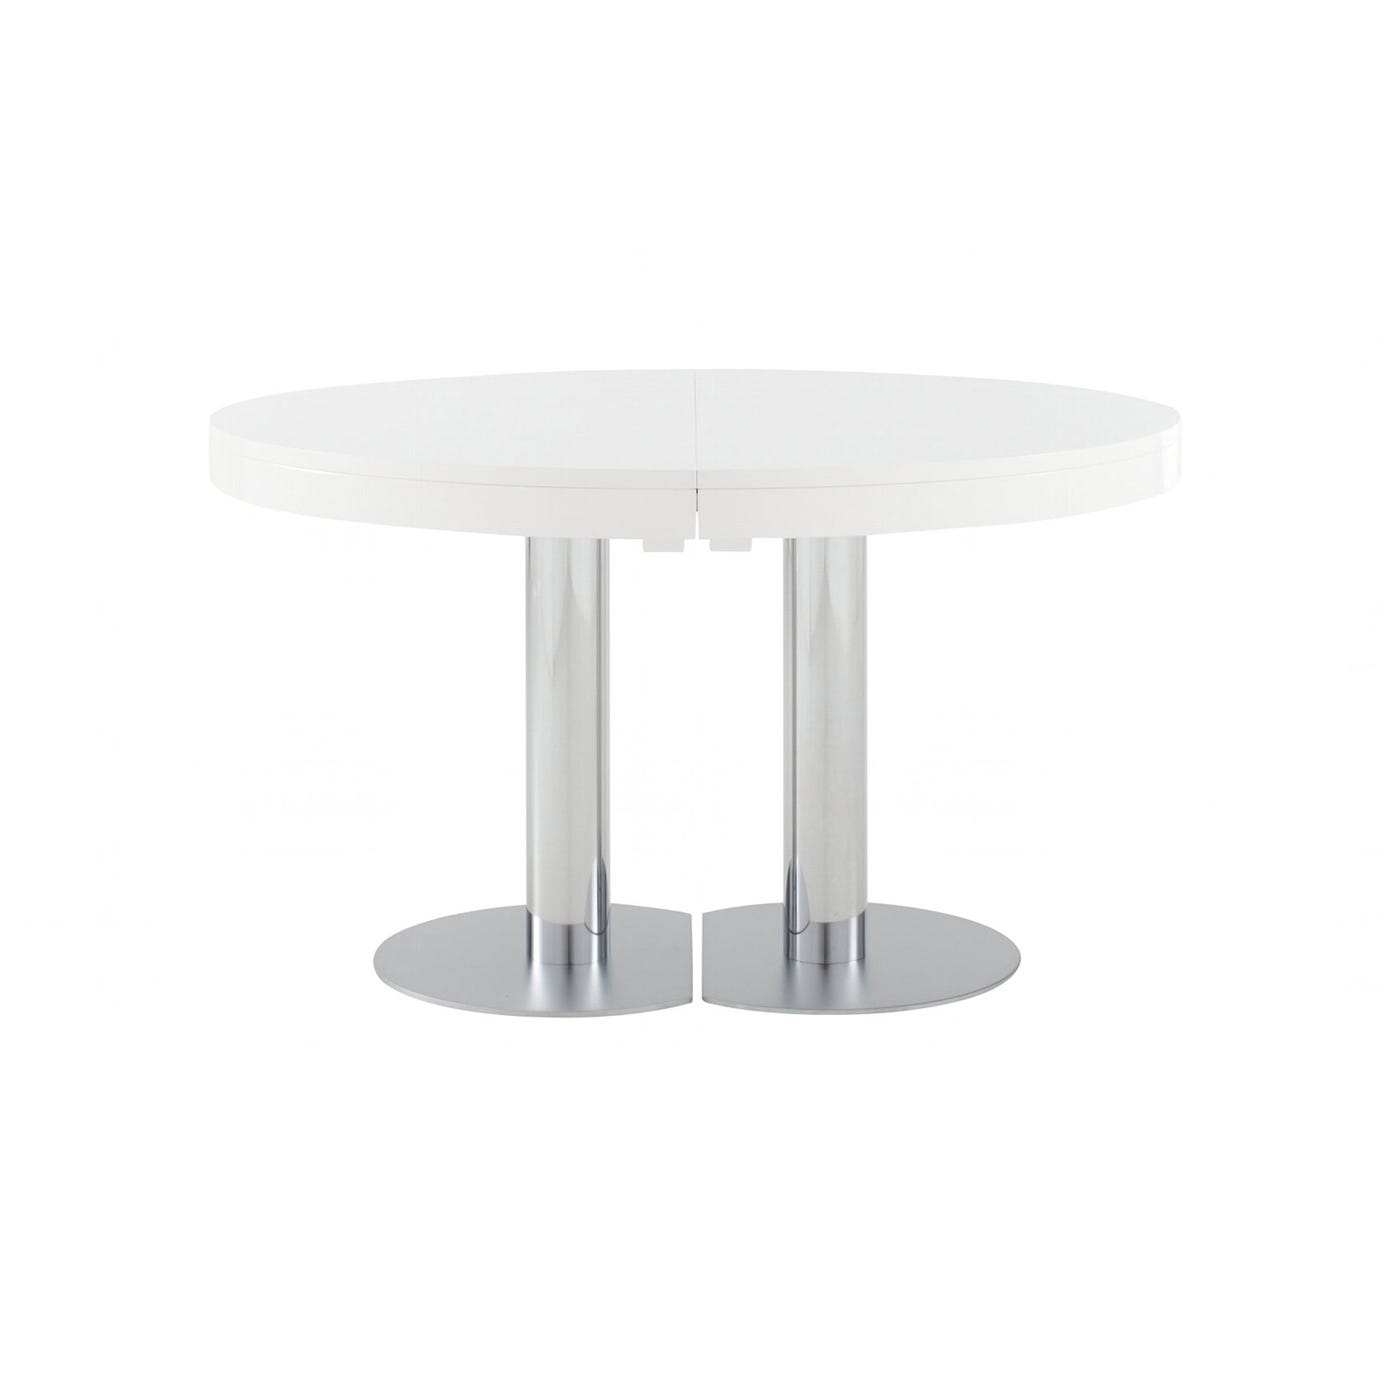 Craft 2 Dining Table 4-6 Seater In White Lacquer